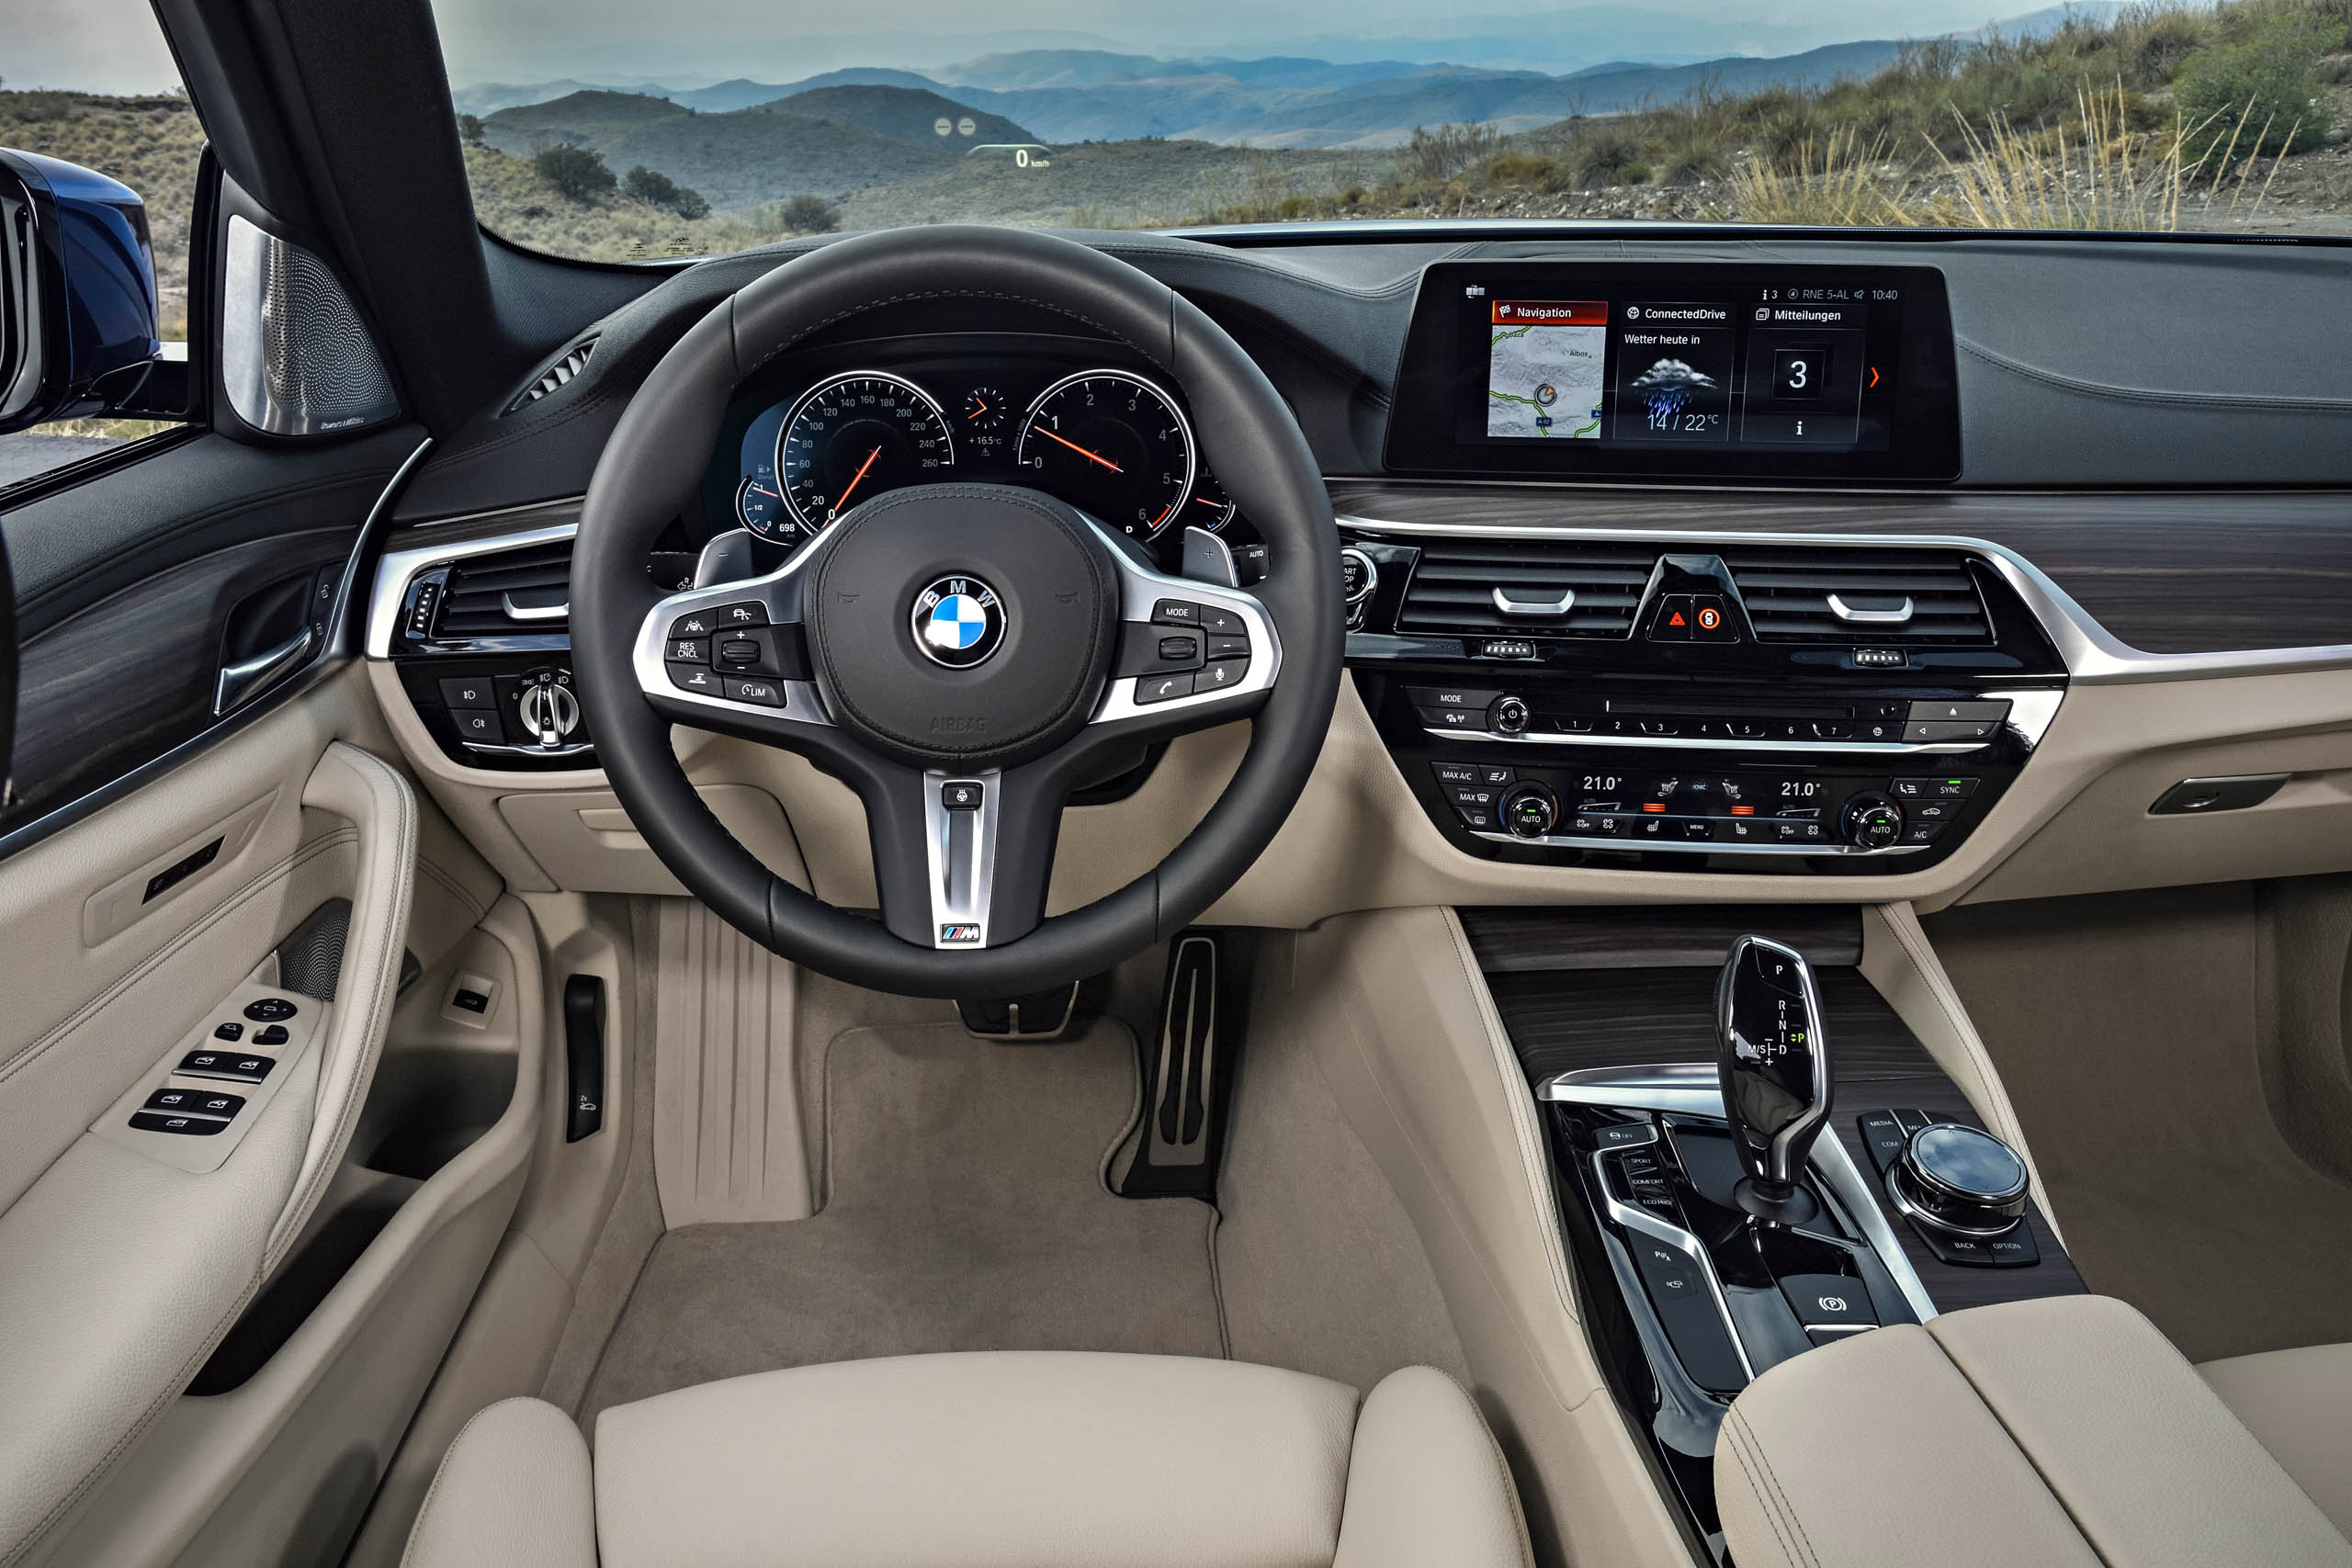 Bmw 520d 2018 >> G31 BMW 5 Series Touring unveiled – 1,700-litre boot Image 610334